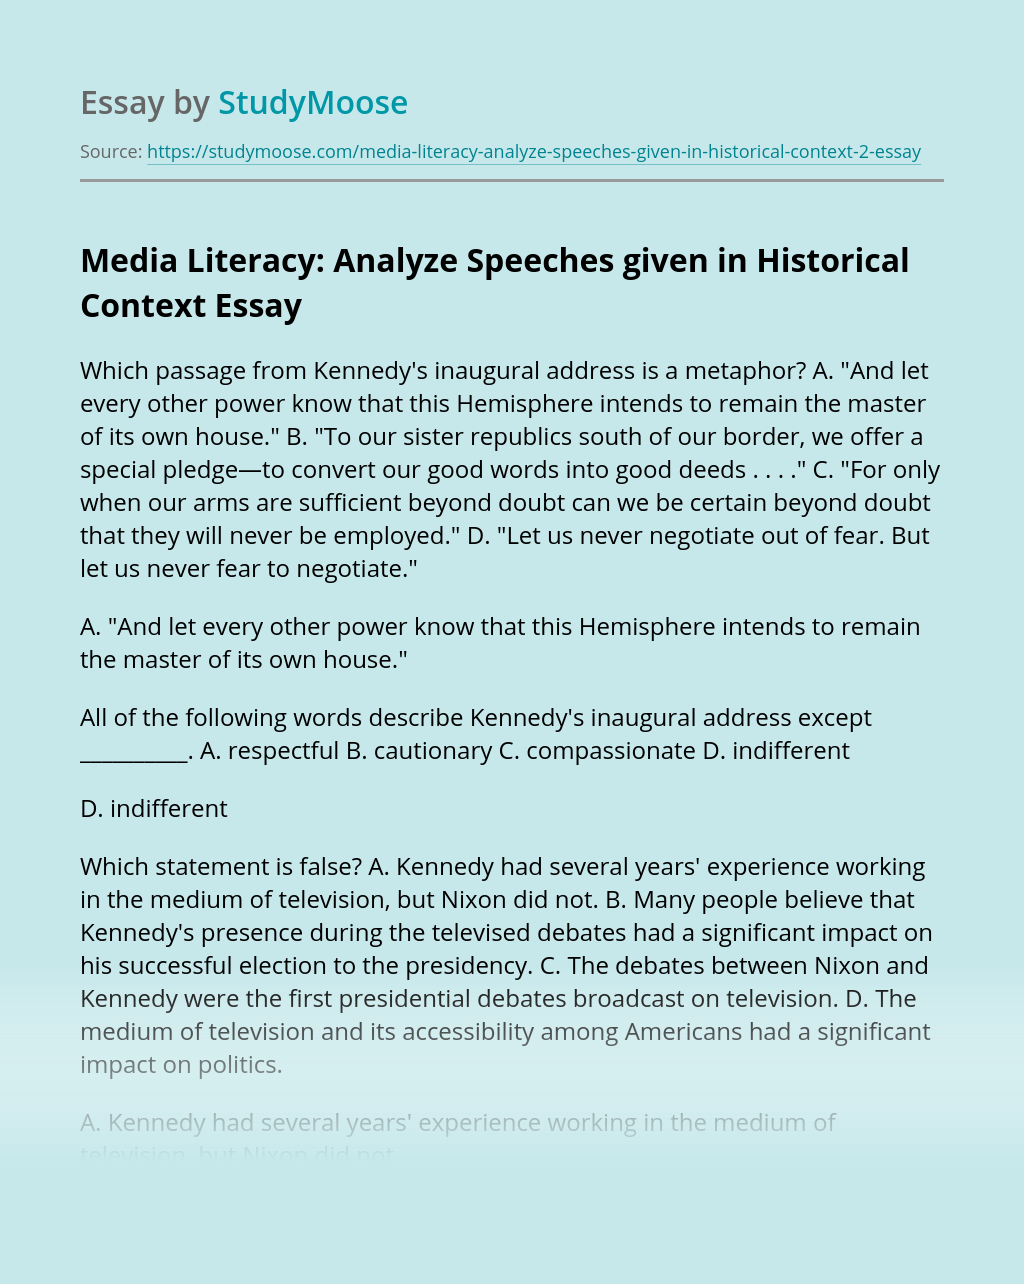 Media Literacy: Analyze Speeches given in Historical Context